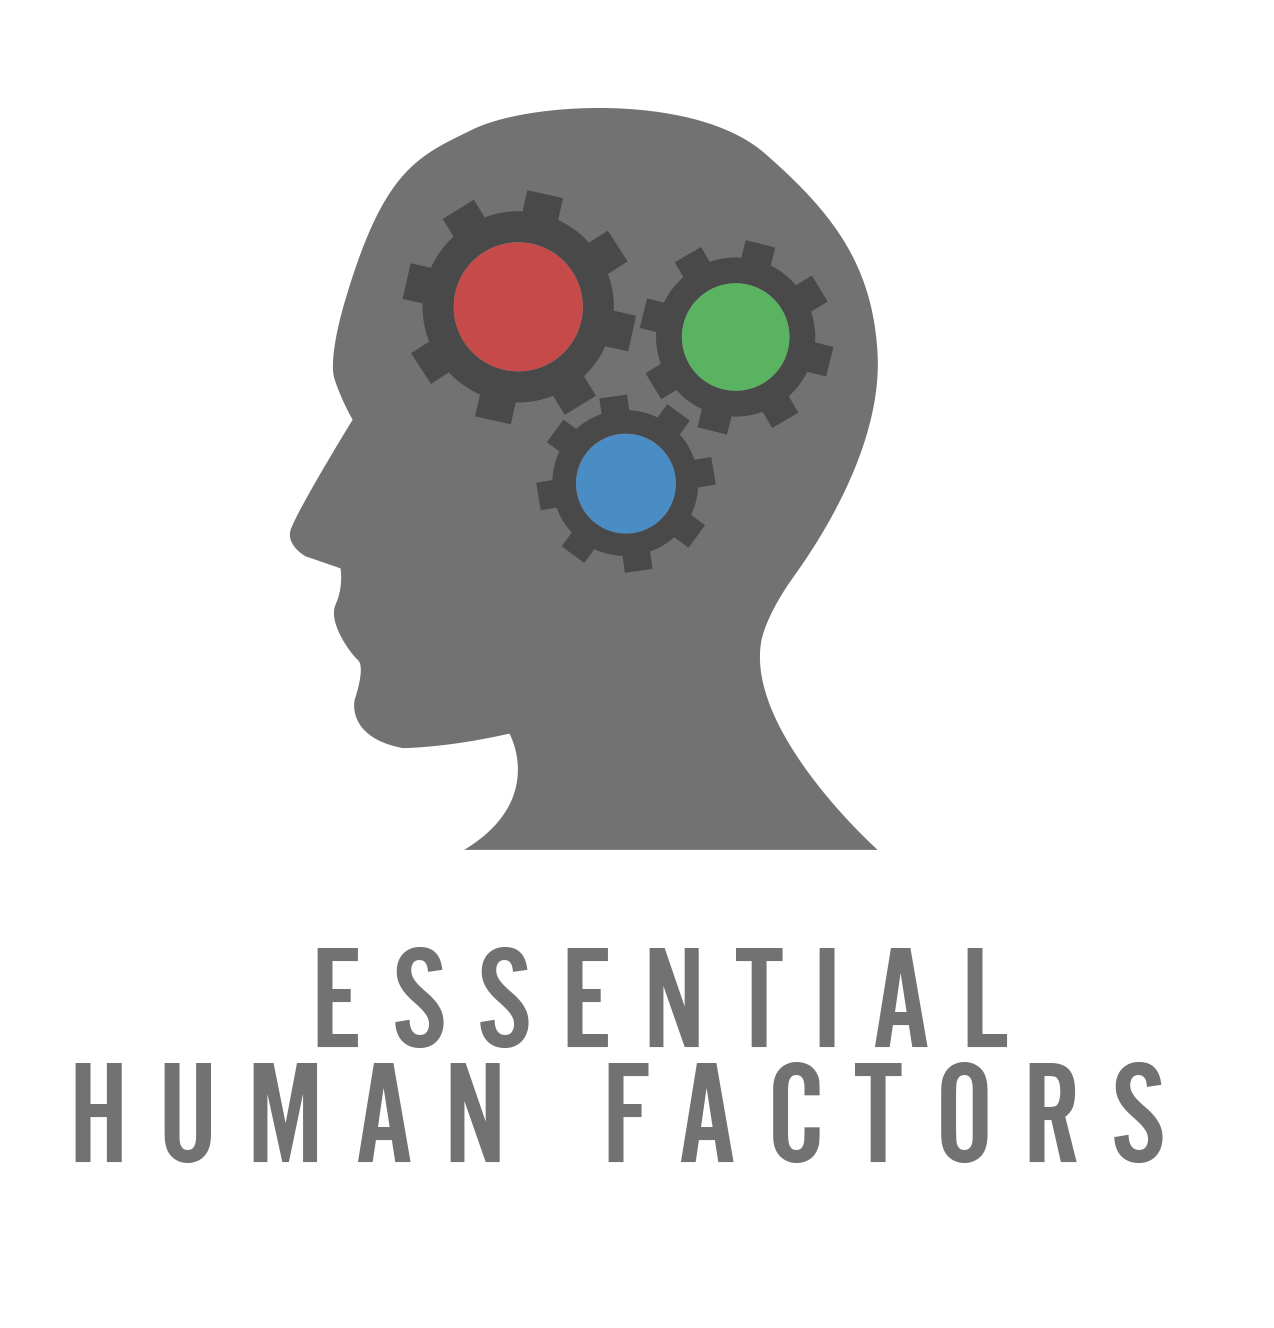 Essential Human Factors